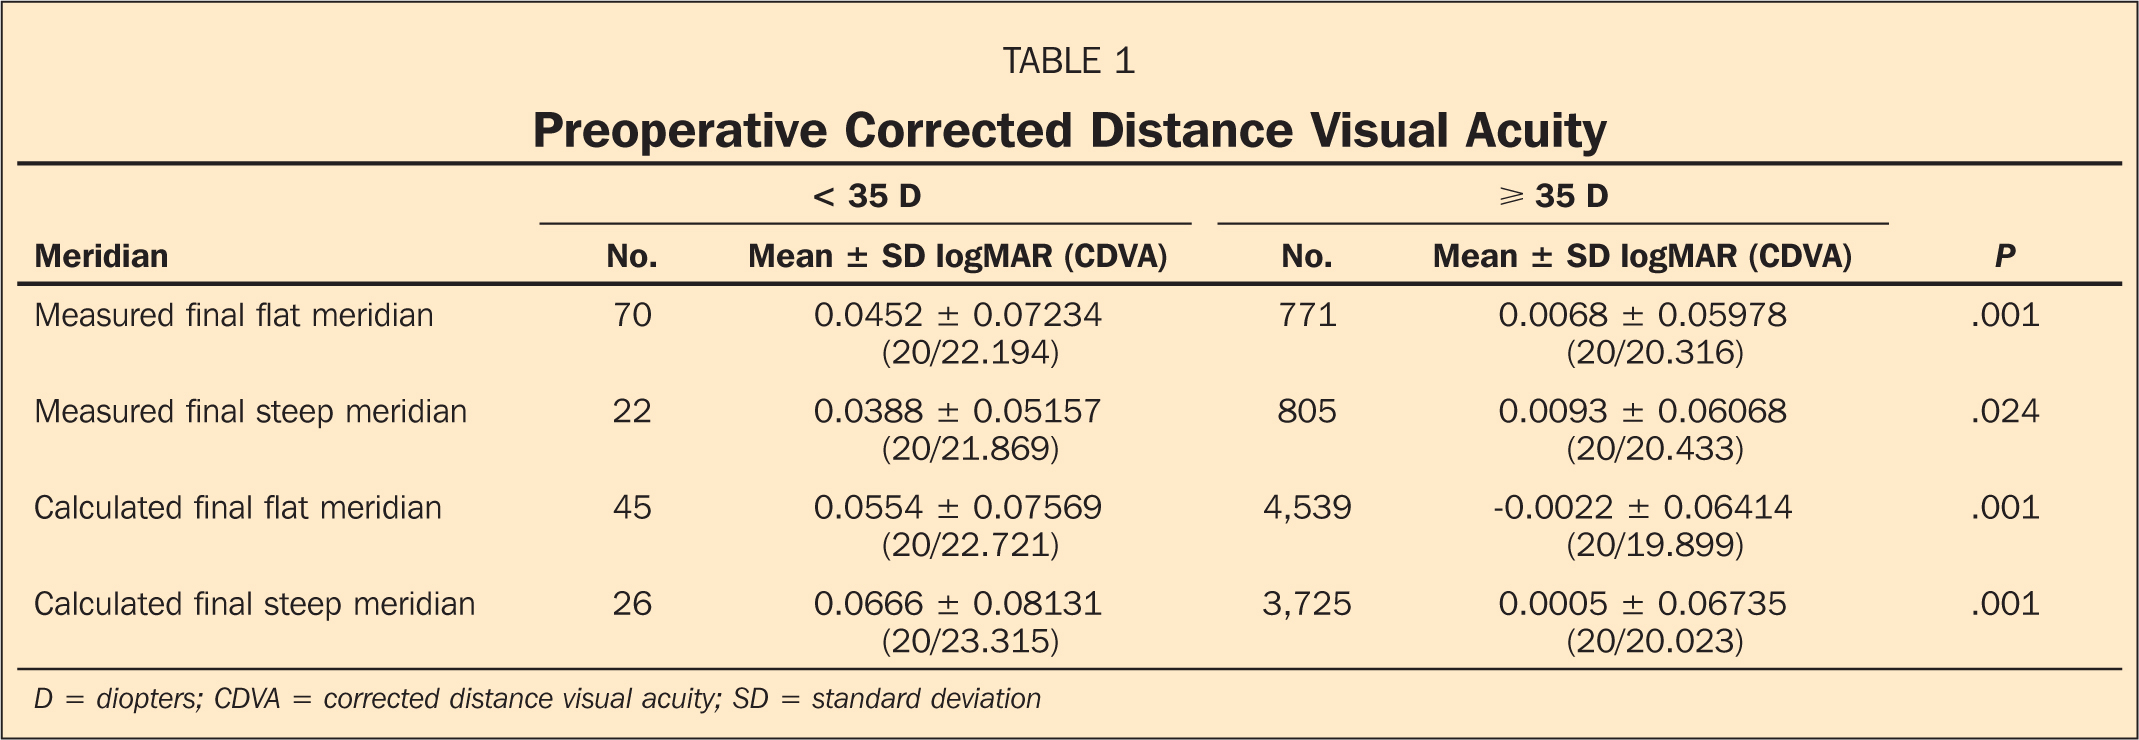 Preoperative Corrected Distance Visual Acuity